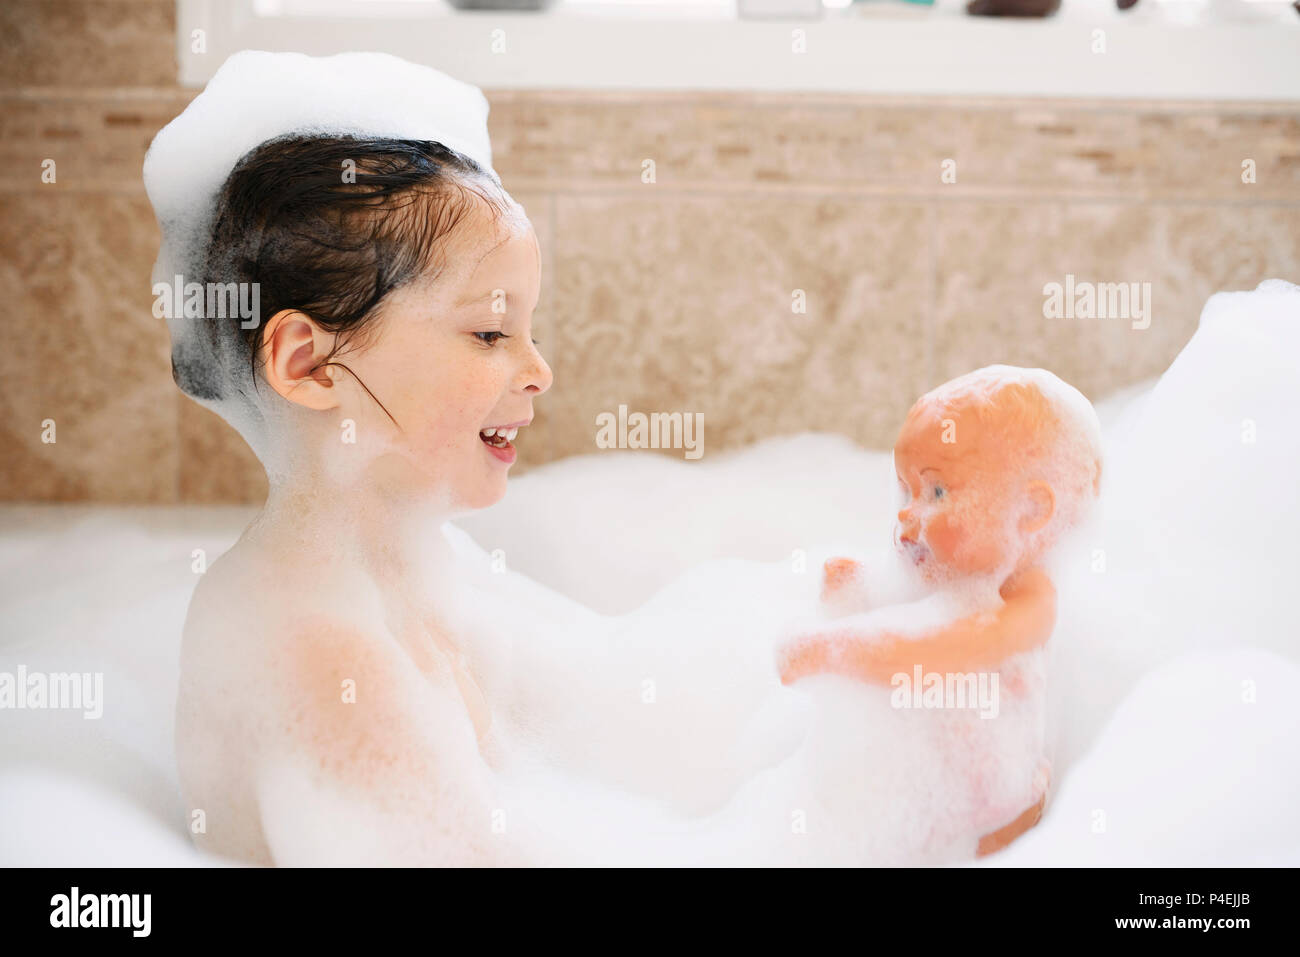 mature-picture-of-girl-in-bubble-bath-cheerleader